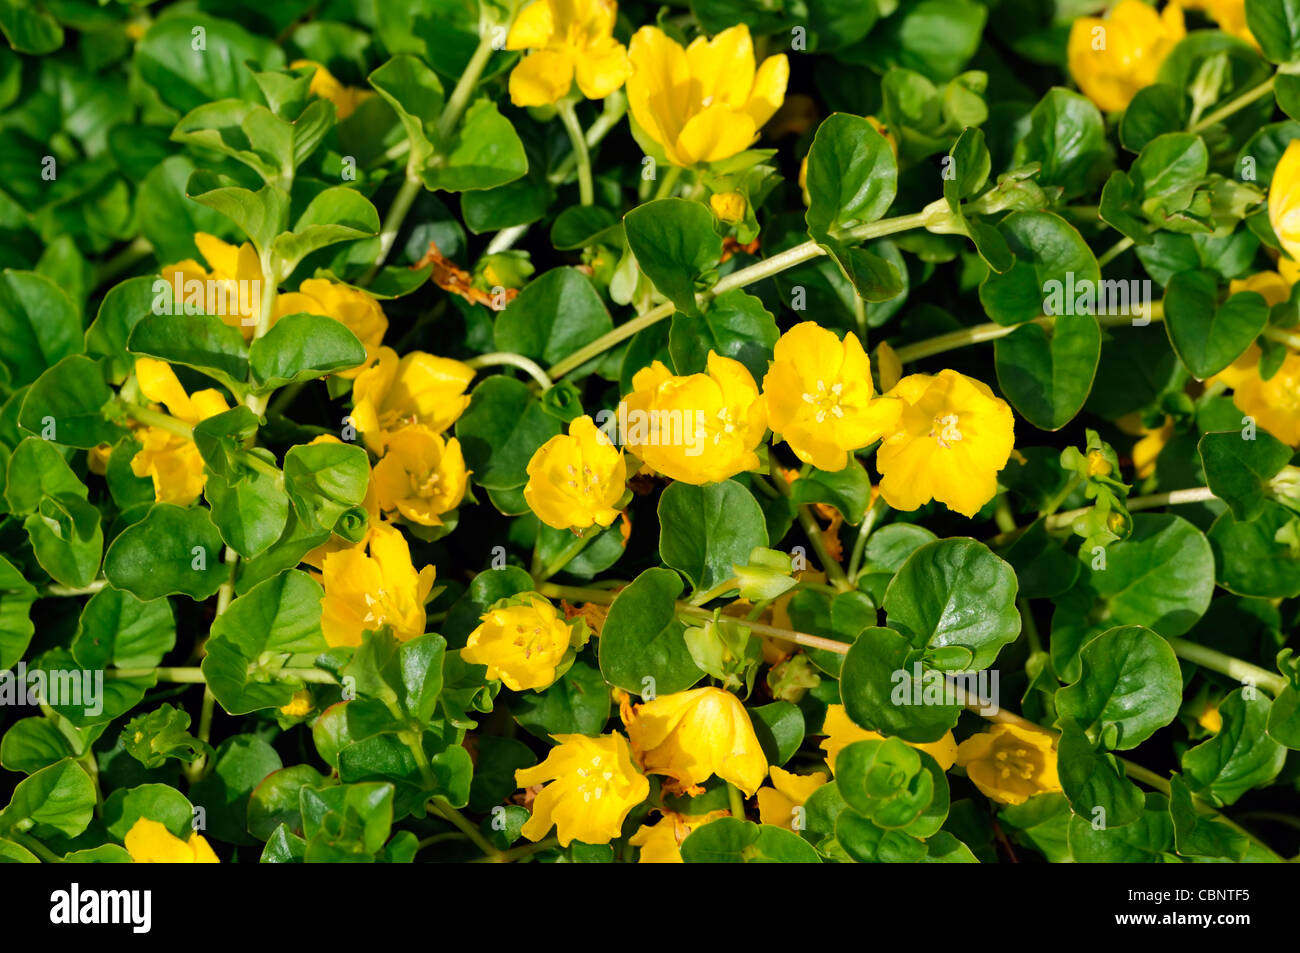 Lysimachia nummularia creeping jenny summer closeup plant portraits lysimachia nummularia creeping jenny summer closeup plant portraits yellow flowers petals spreading groundcover blooms blossoms mightylinksfo